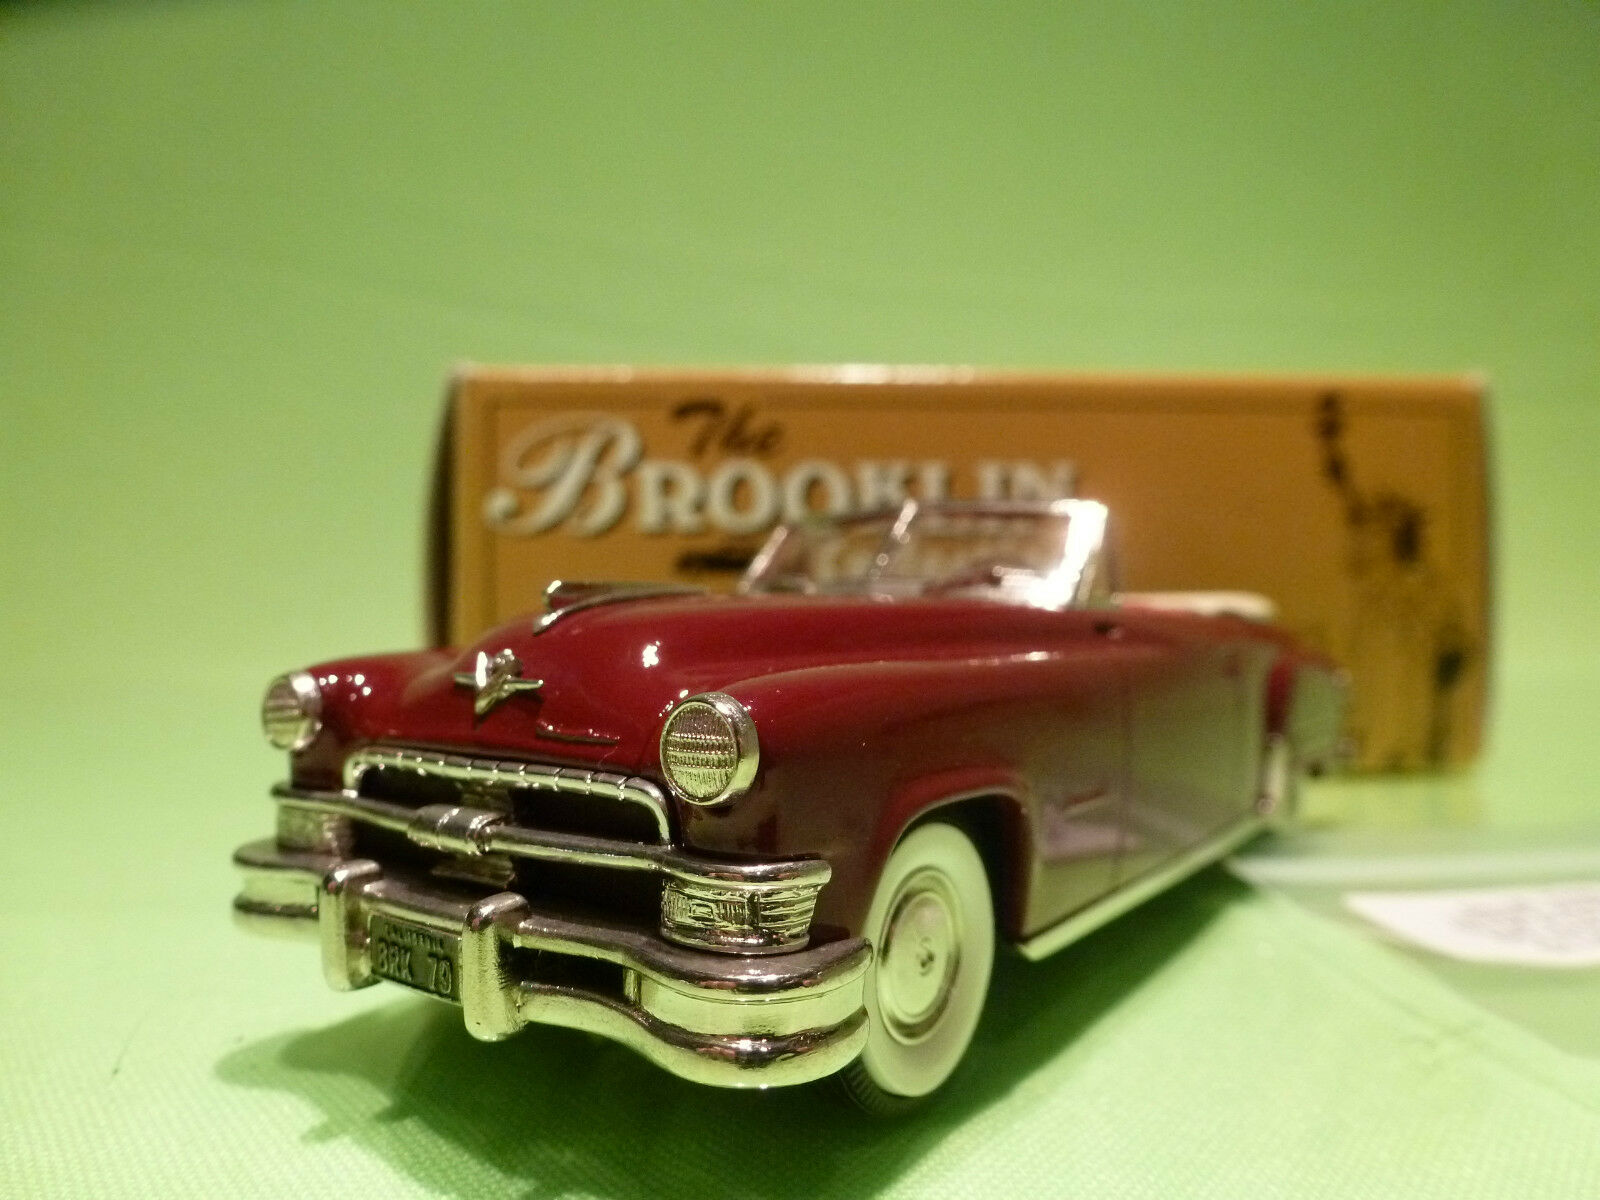 BROOKLIN MODELS BRK 79 CHRYSLER IMPERIAL IMPERIAL IMPERIAL CONgreenIBLE 1951 - MAROON - 1 43 - NMIB b32494